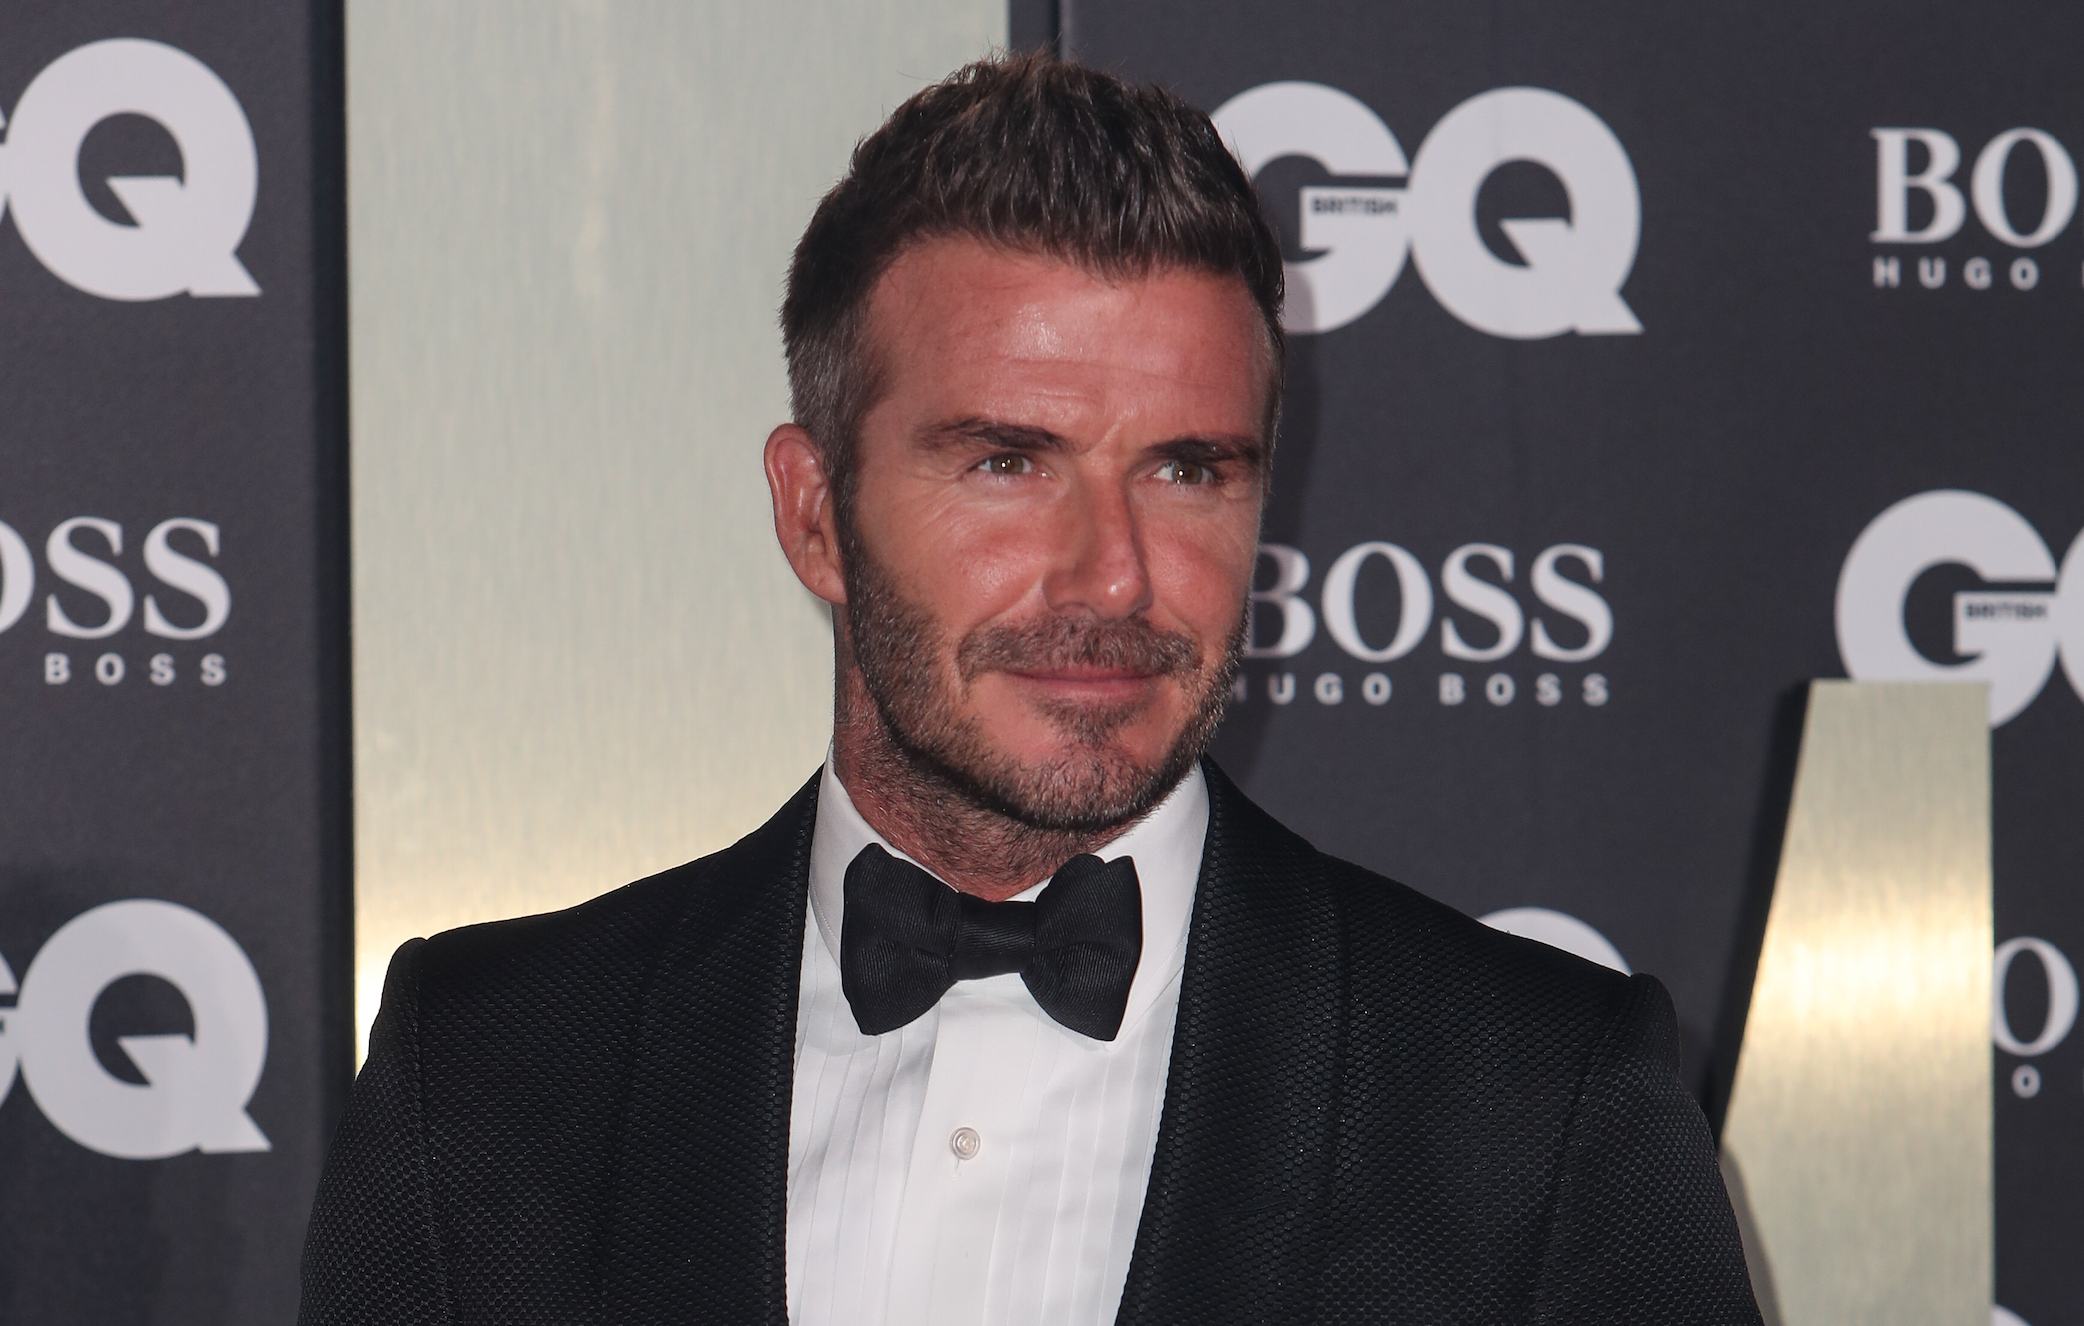 Victoria Beckham and family pay sweet tributes to David Beckham on his 45th birthday